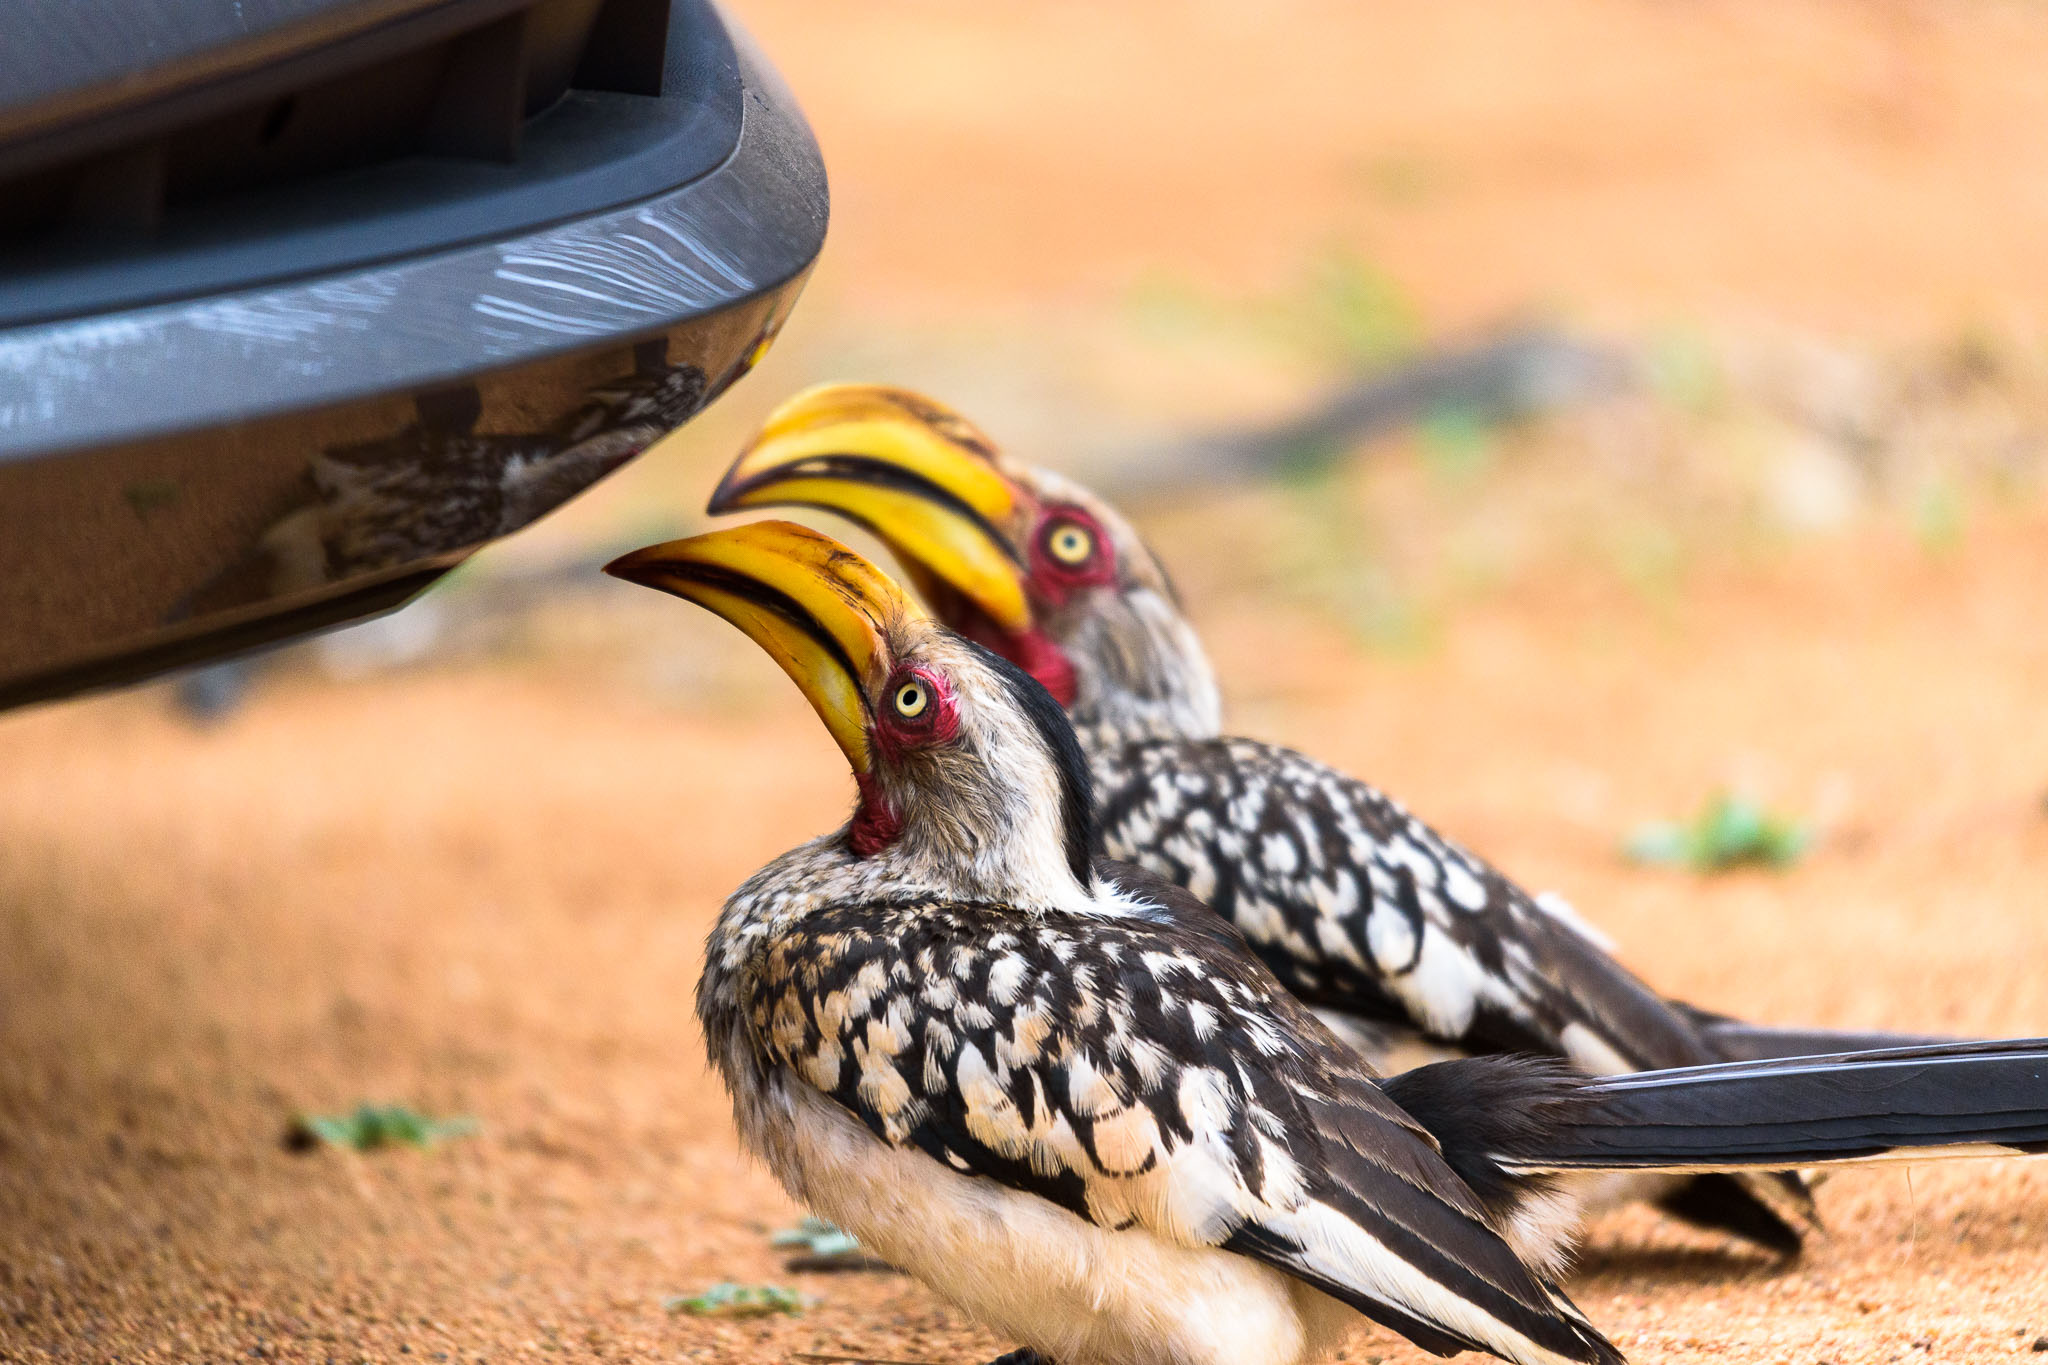 The grey African hornbill is often portrayed as a comical bird. I wouldn't have believed the stereotype was based on reality until I met these two who spent nearly half an hour looking at their reflections in the cars shiny plastic. They really are intelligent and curious birds.